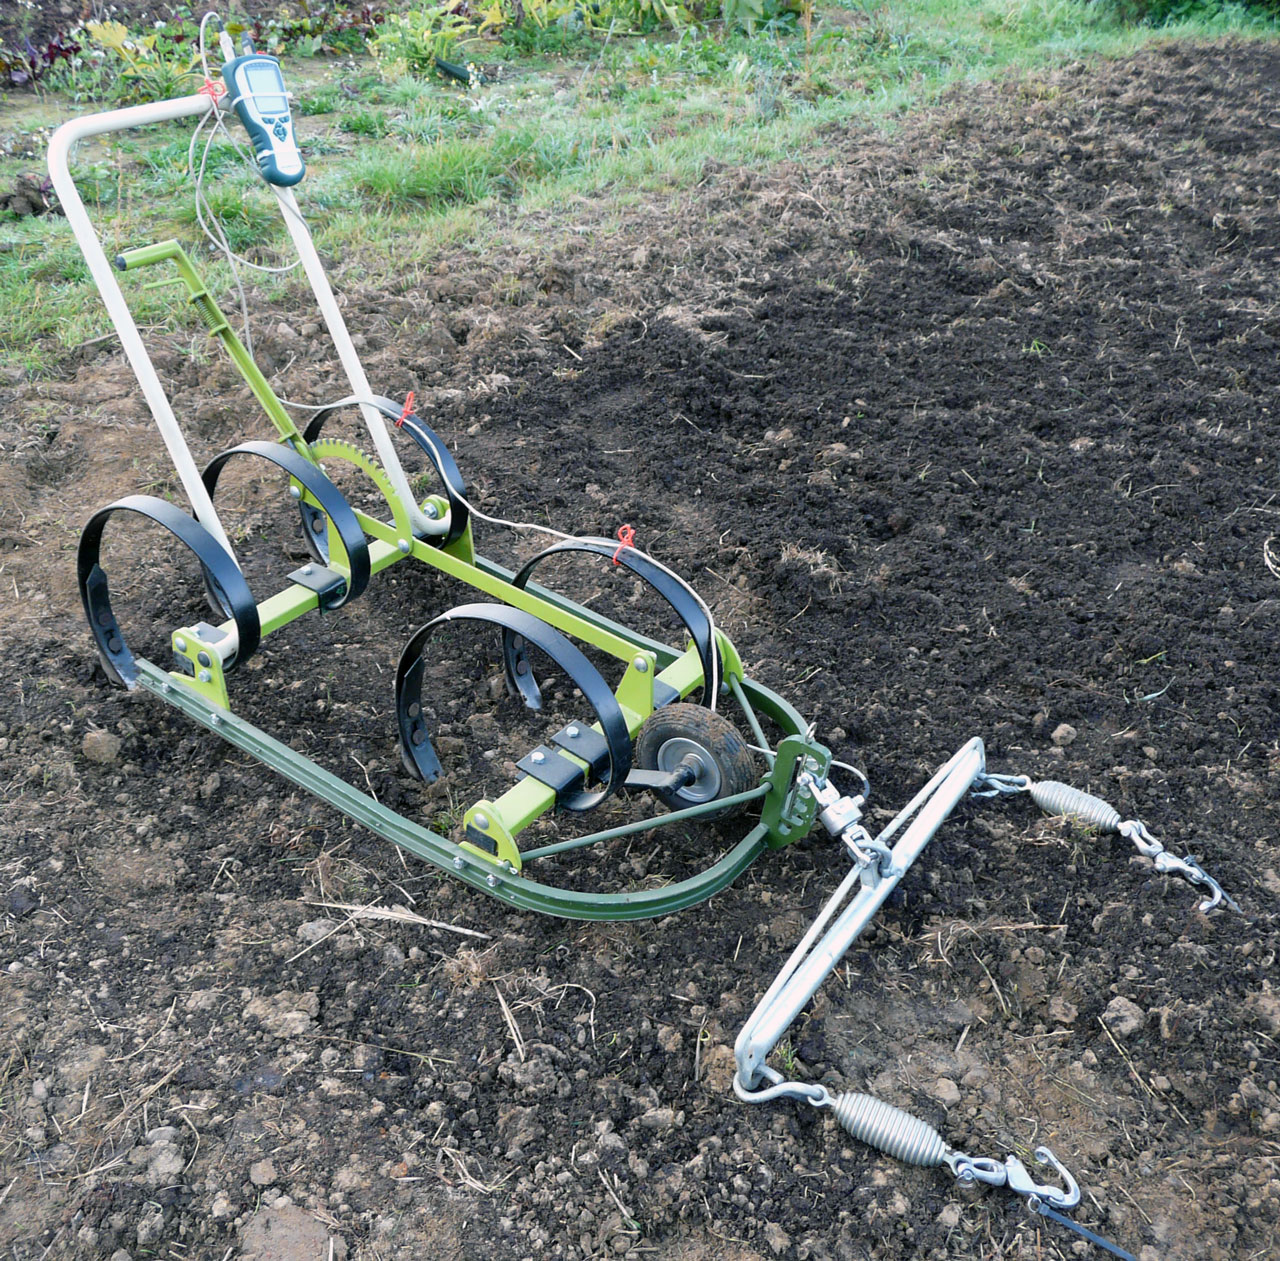 Spring Tooth Cultivator Equi Idea Canadese